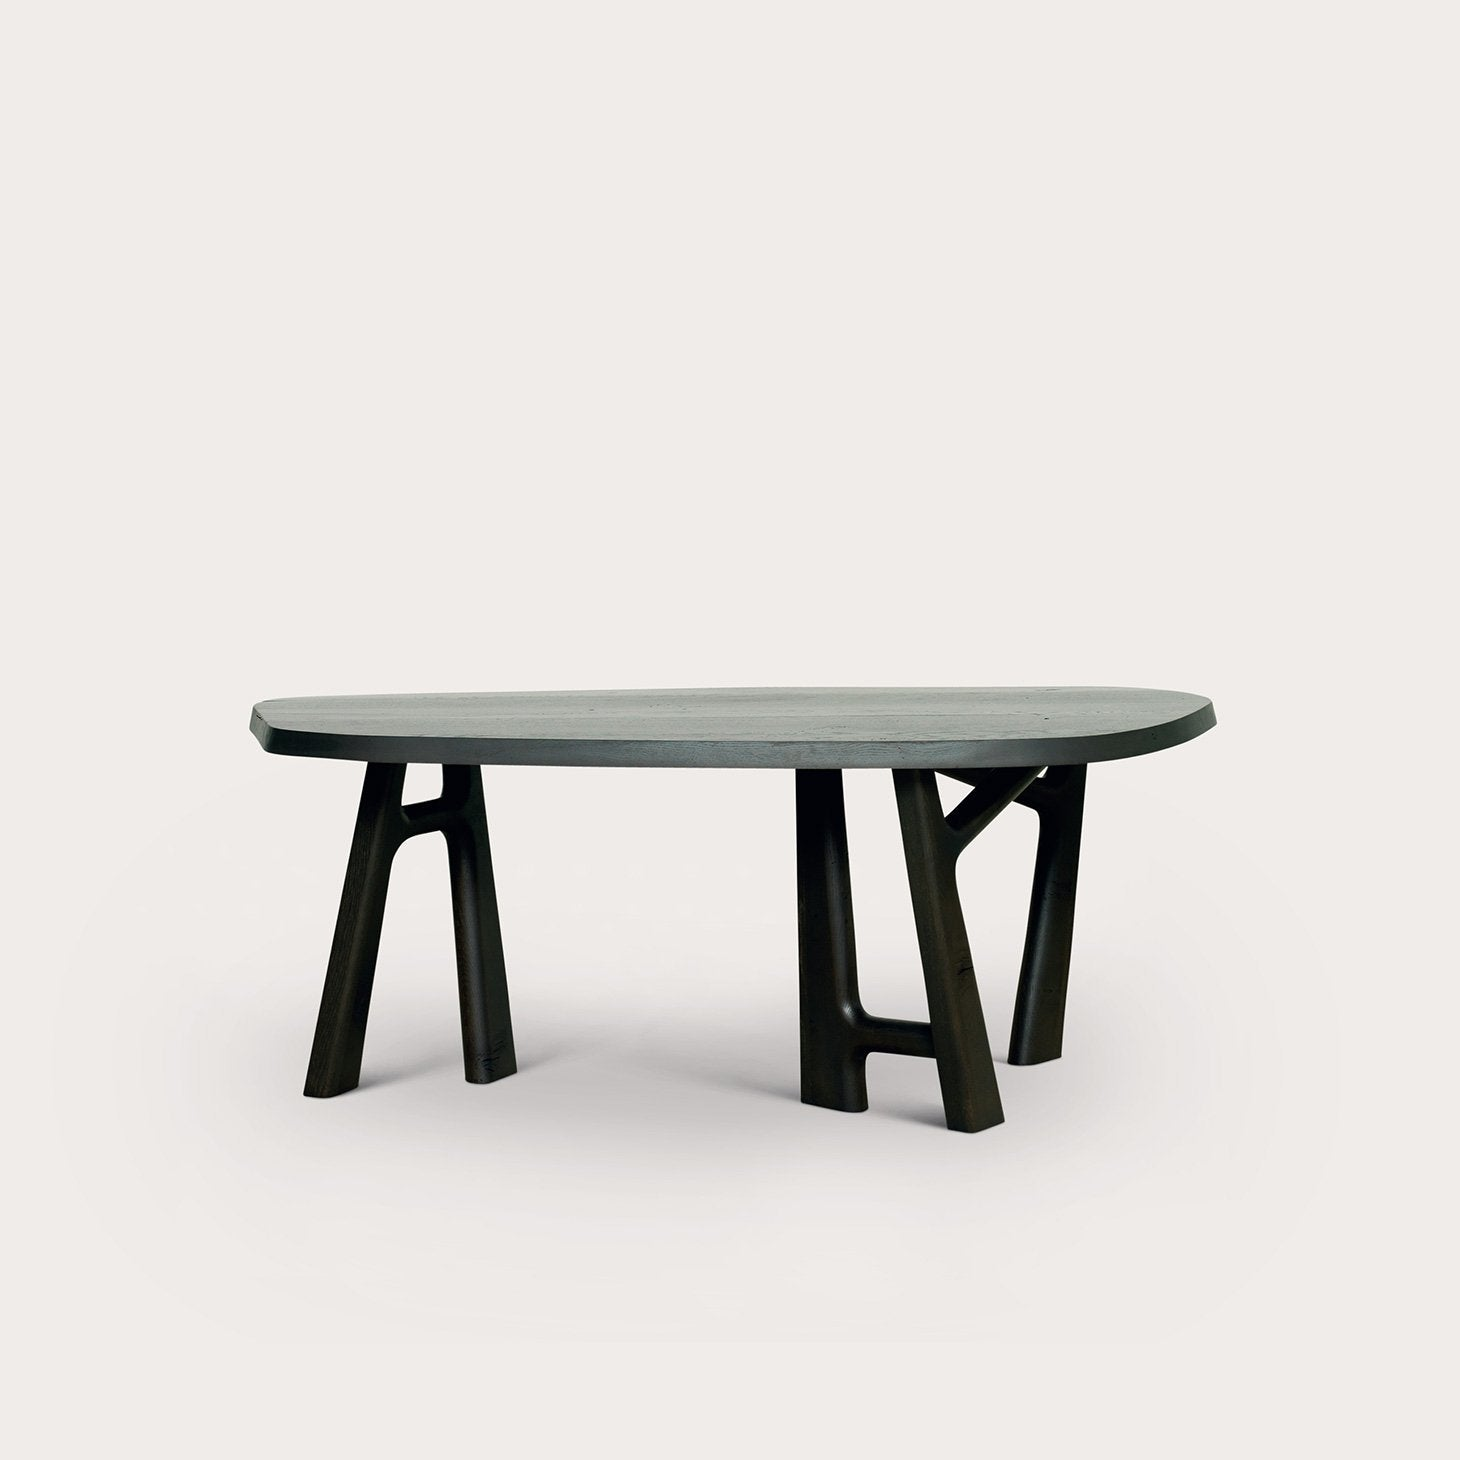 YBU Tables Jean-Pierre Tortil Designer Furniture Sku: 008-230-10431